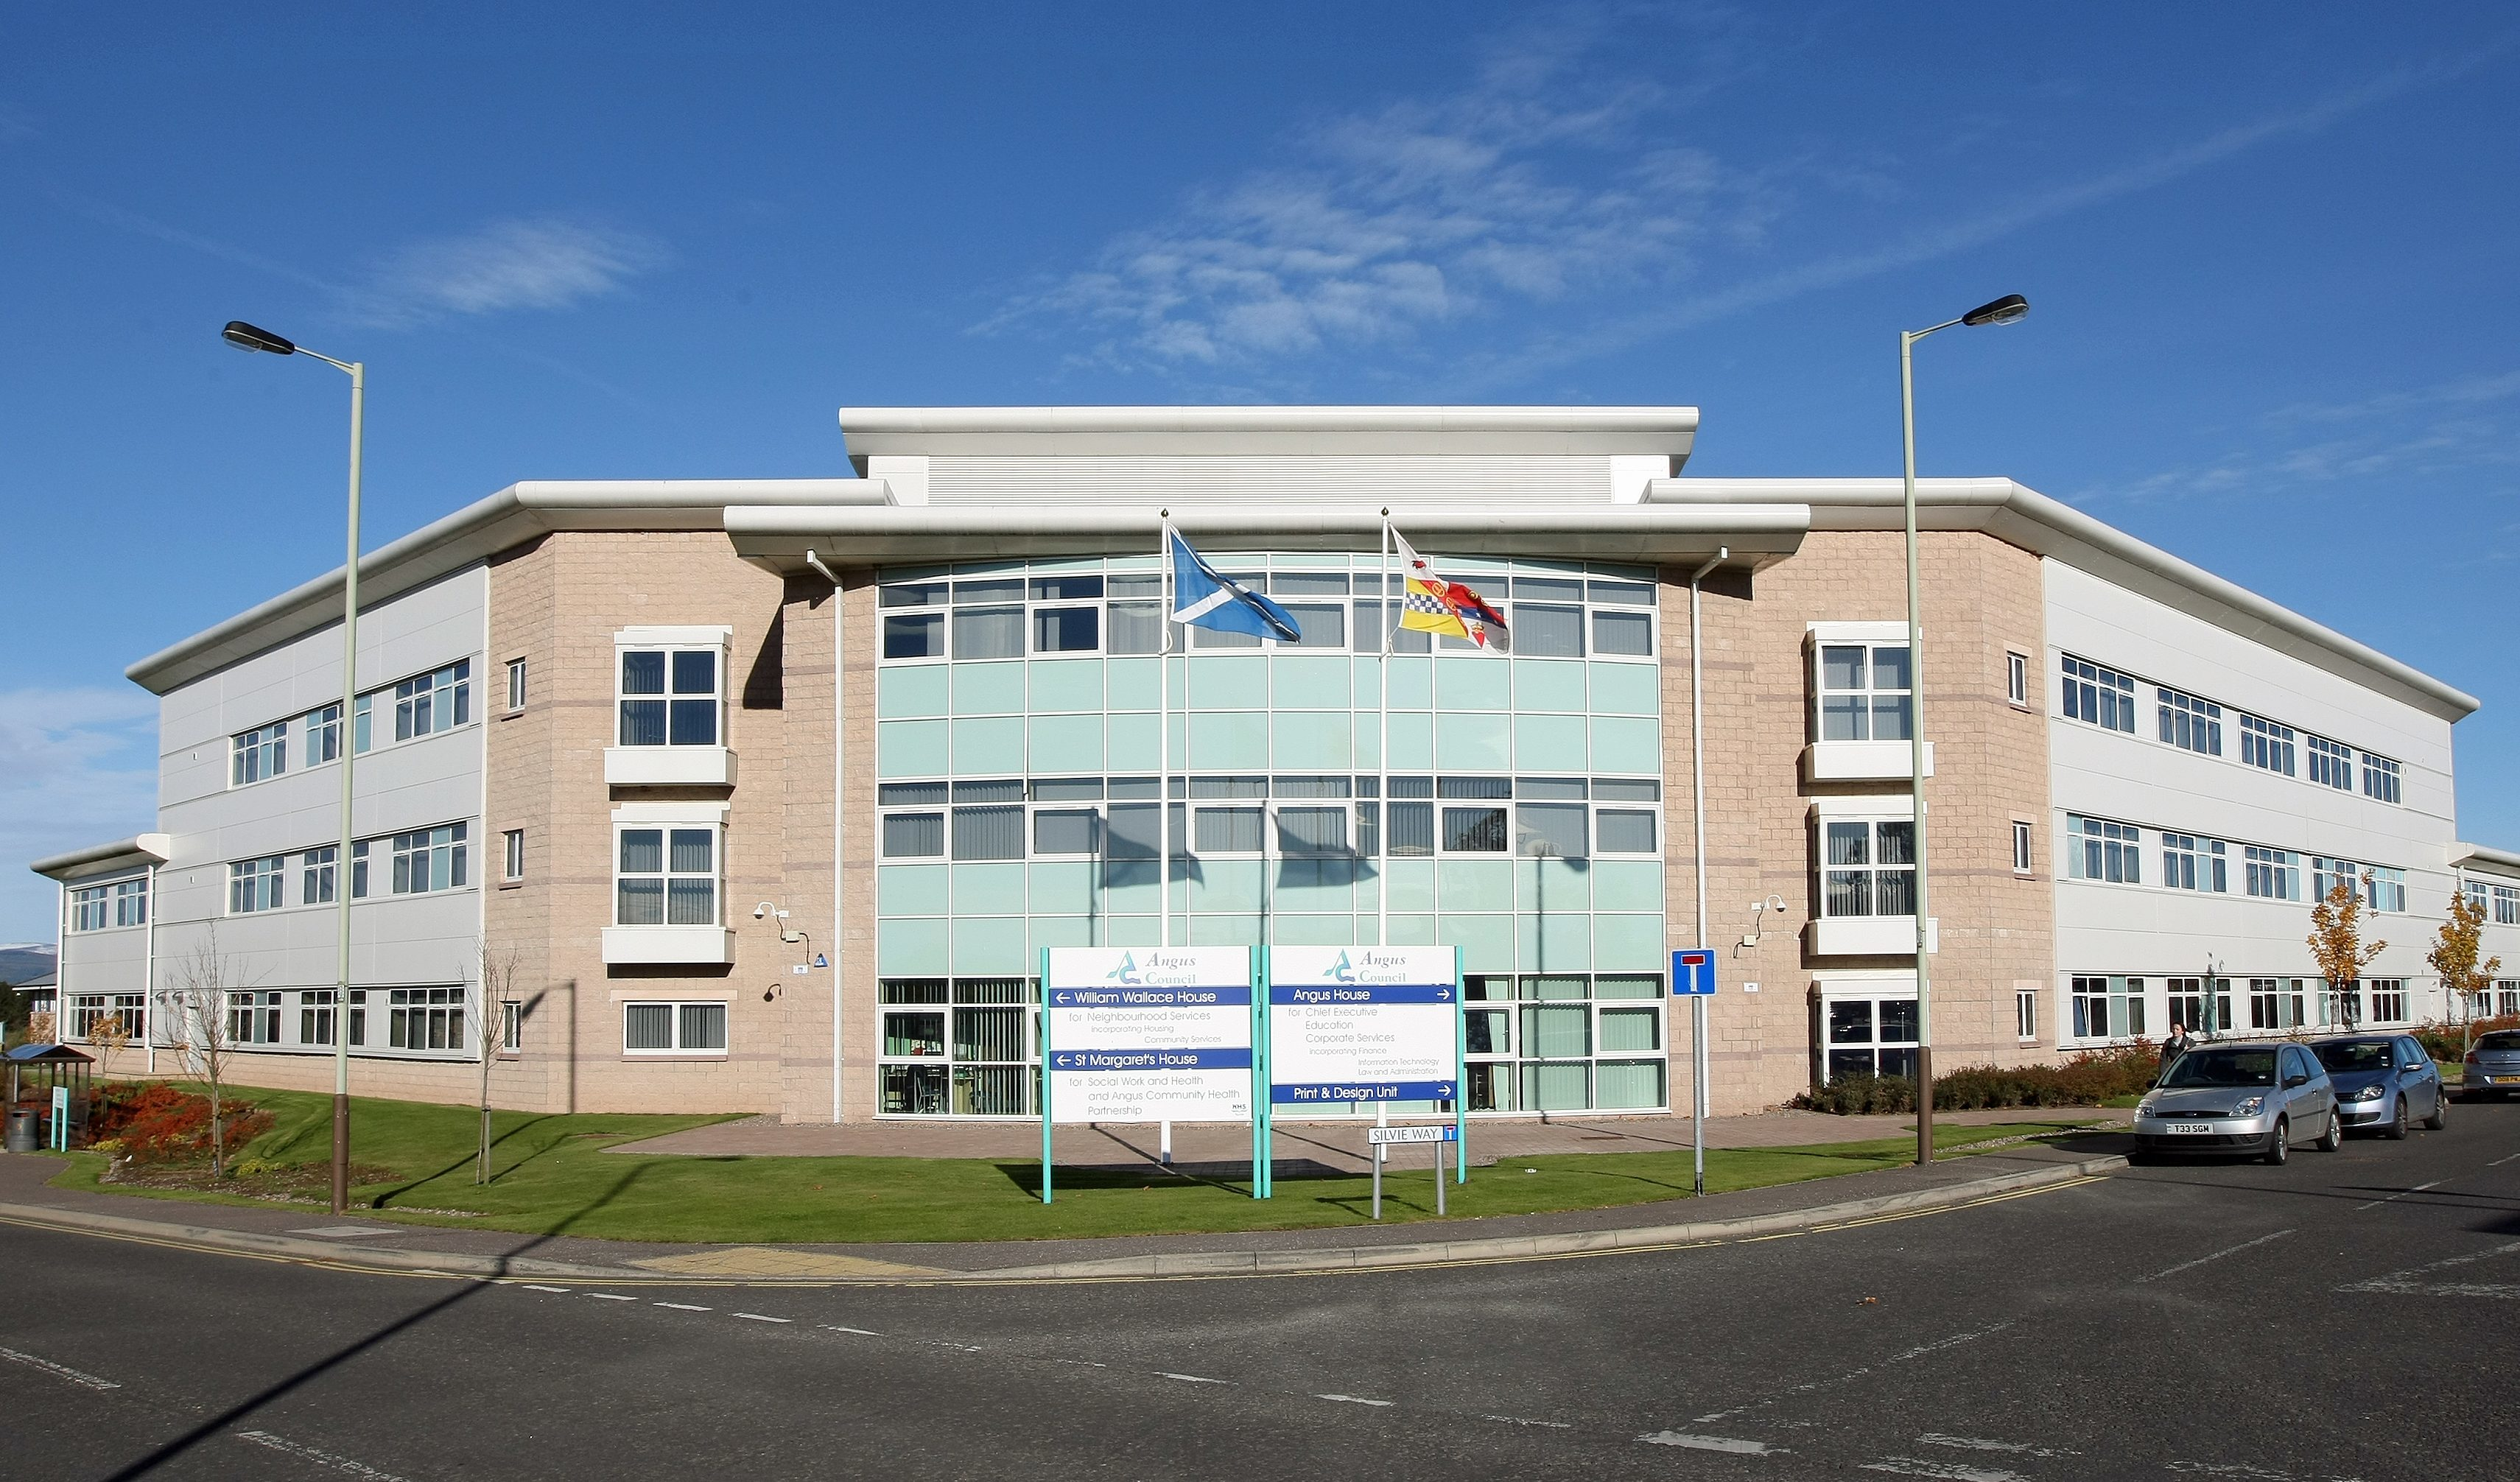 The council's headquarters in Forfar